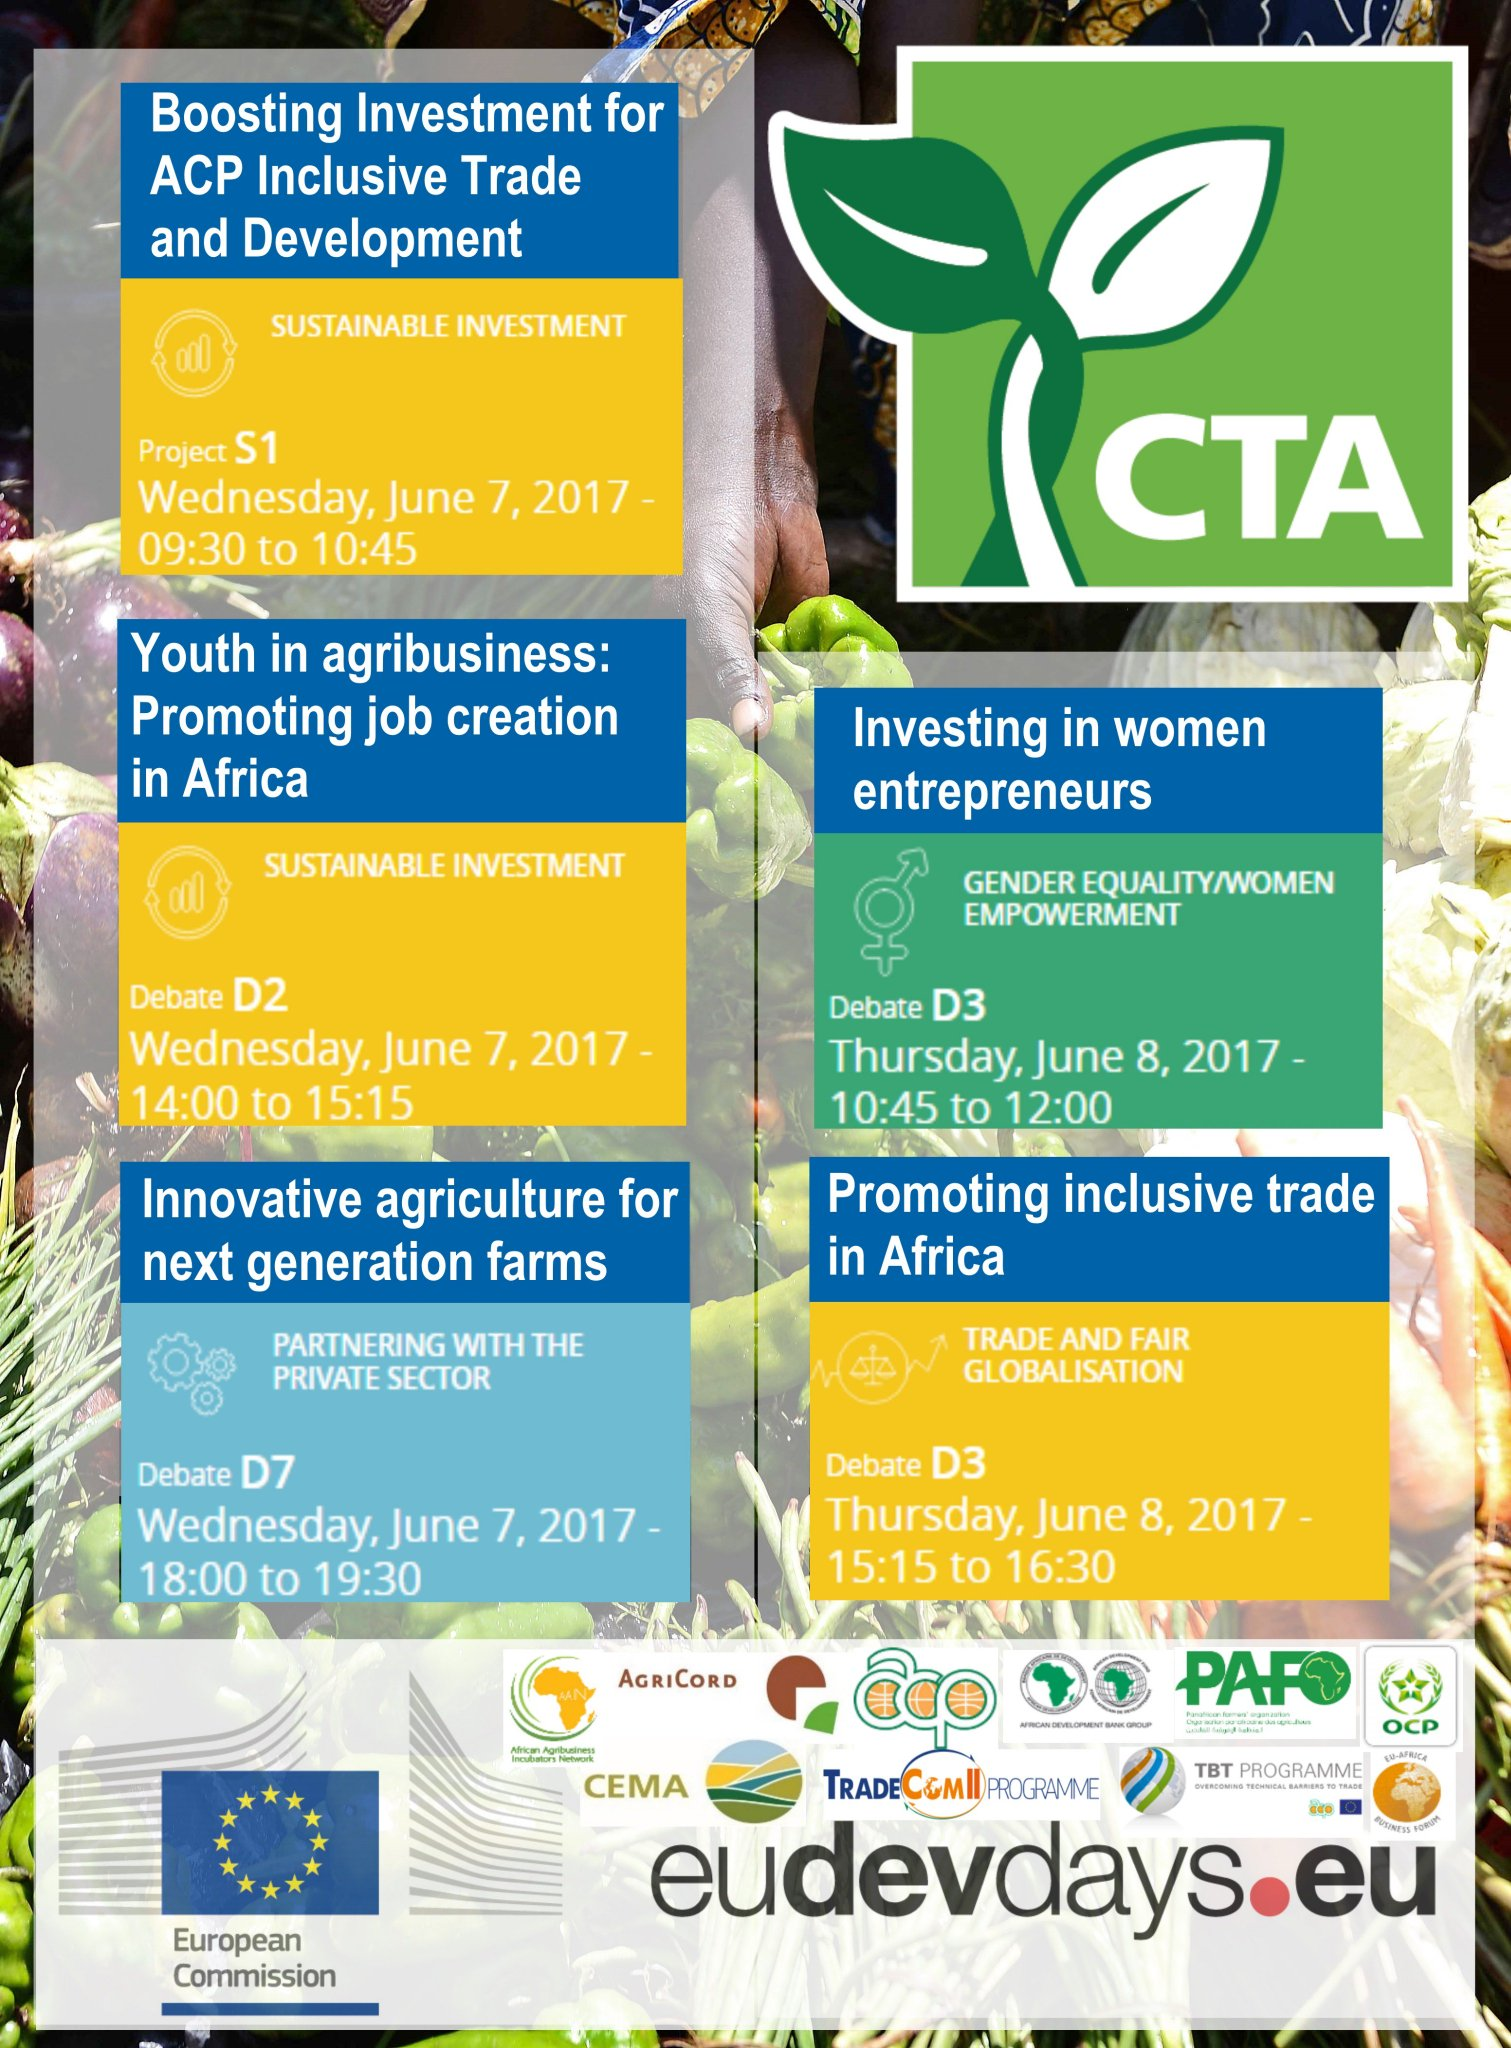 Excited about the #EDD17? Us too! Join 5 key debates on the future of agriculture w @CTAflash & partners More Info ➡️https://t.co/5ruFq3bZjd https://t.co/FhwwQ6jW3g